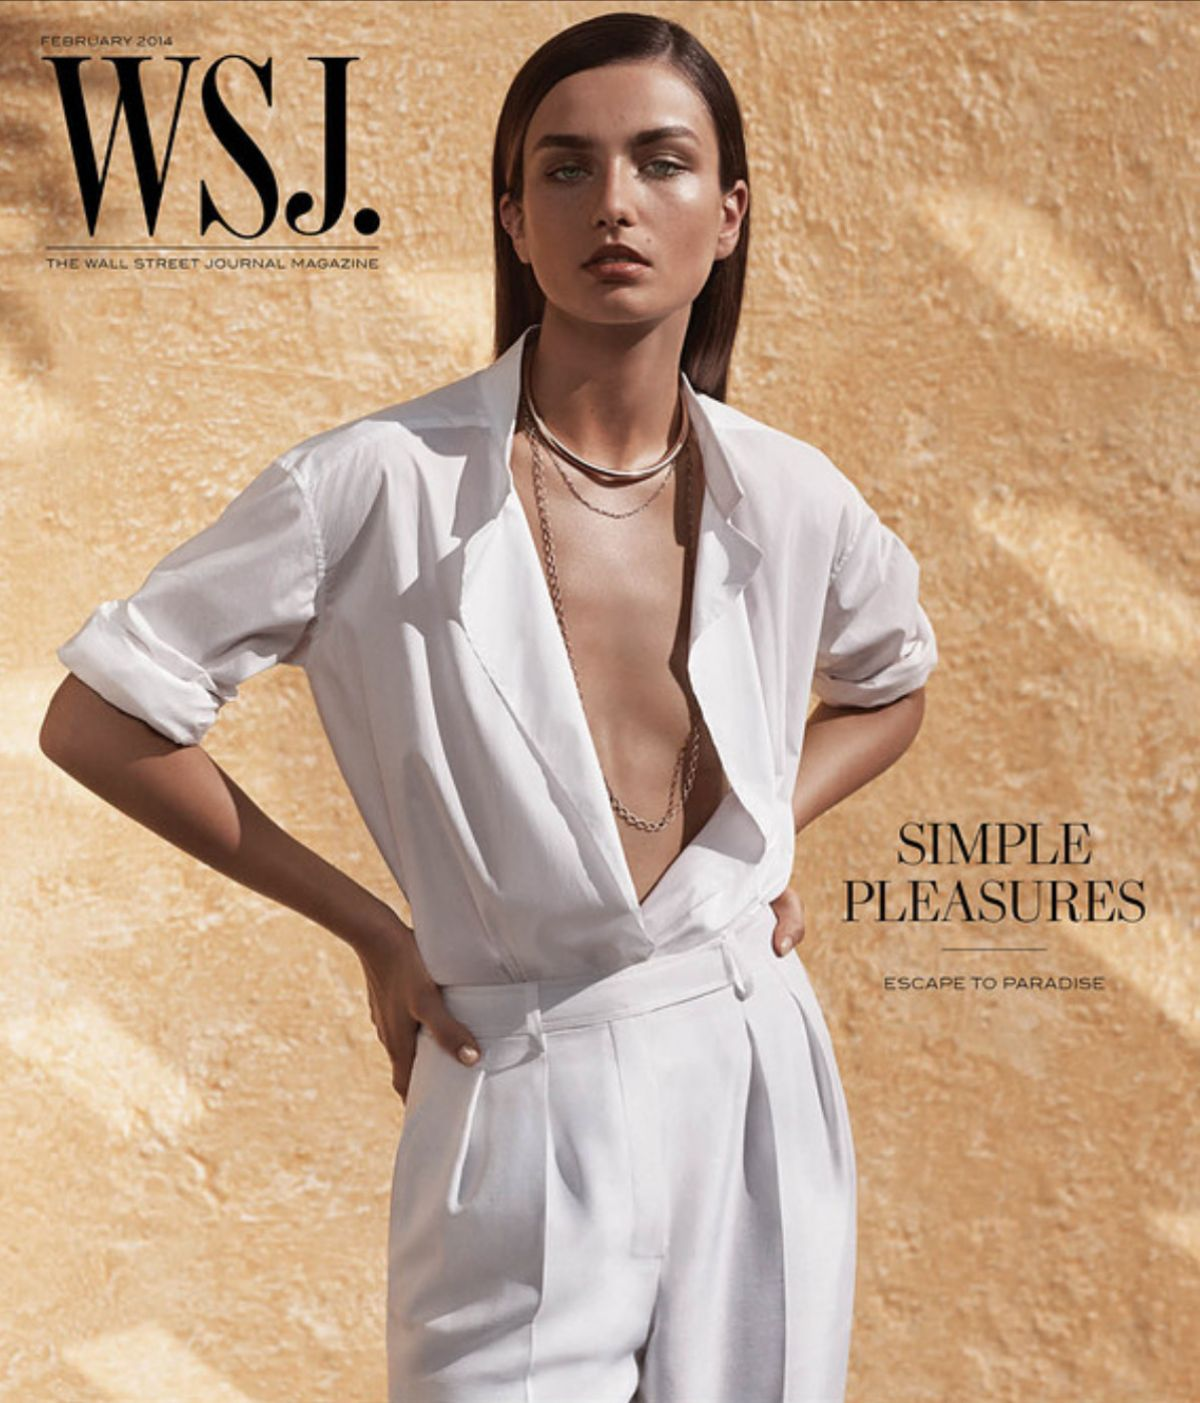 ANDREEA DIACONU in WSJ Magazine, February 2014 Issue